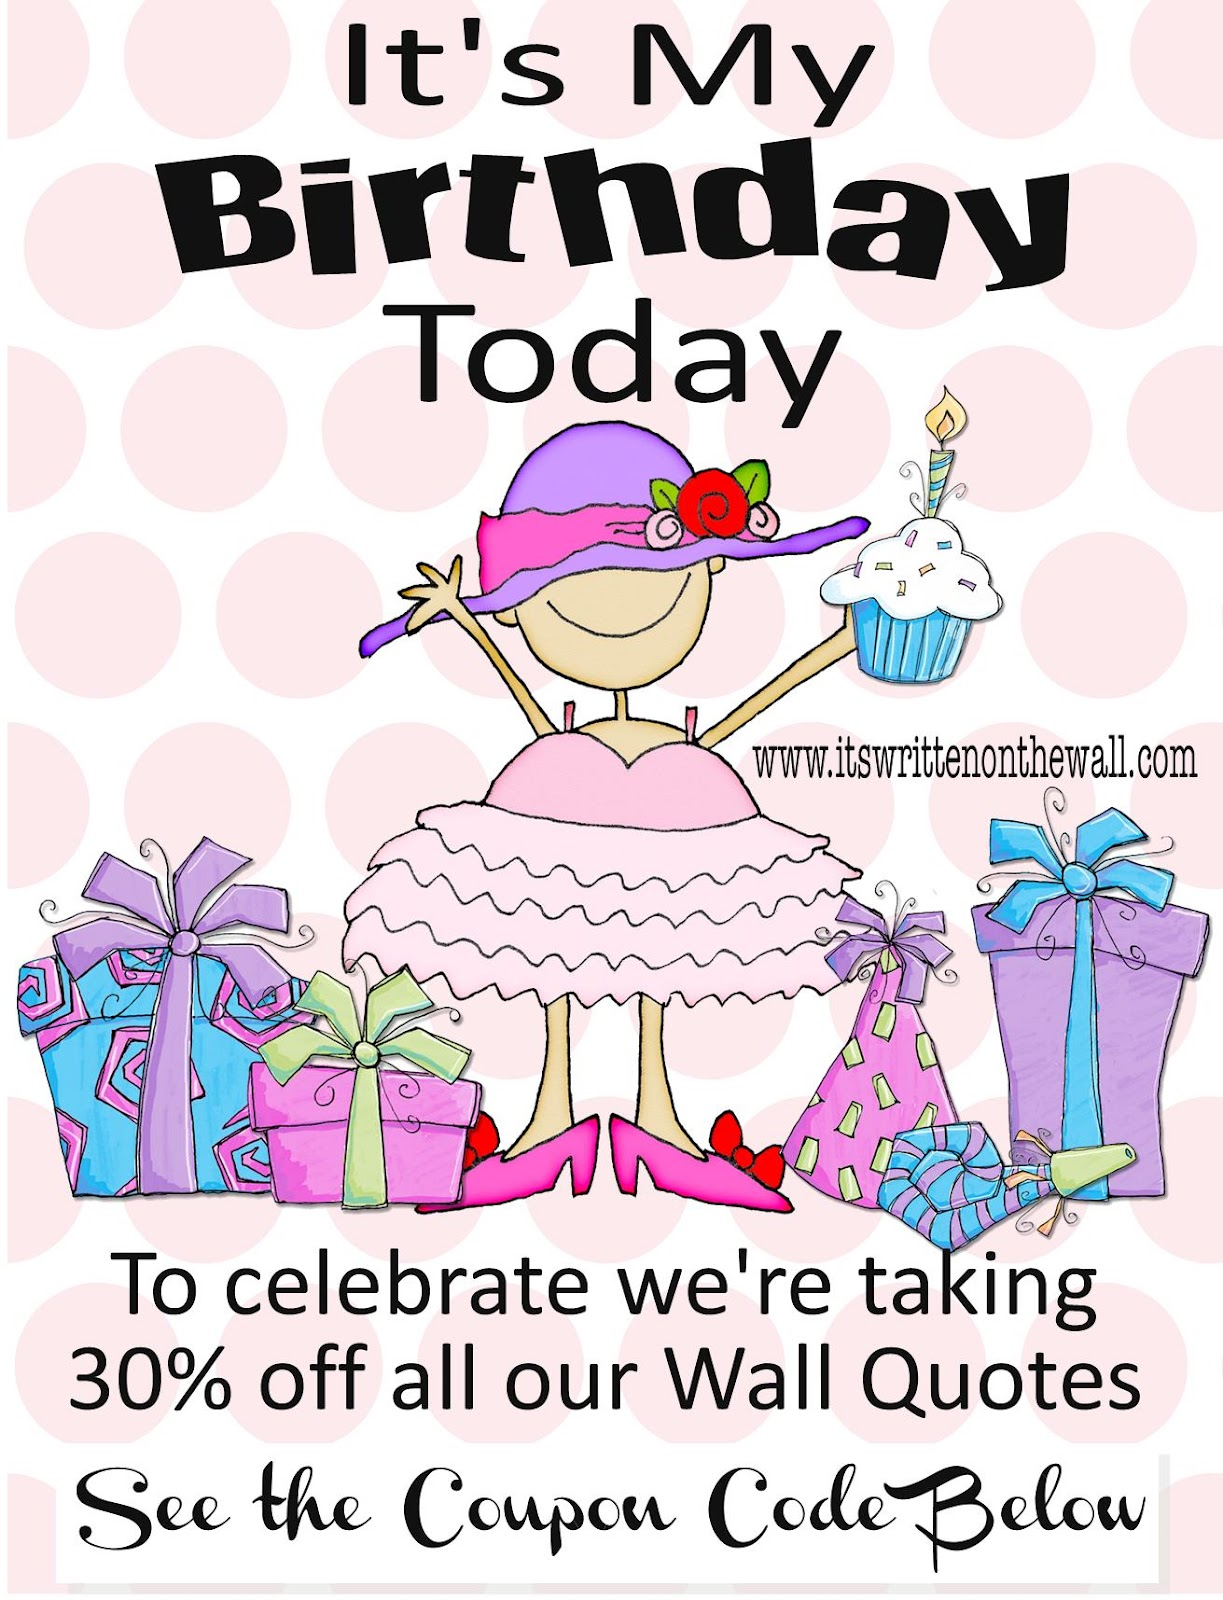 Birthday Celebration Quotes It's My Birthday Todaylet's Celebrate With 30% Off Our Vinyl Wall